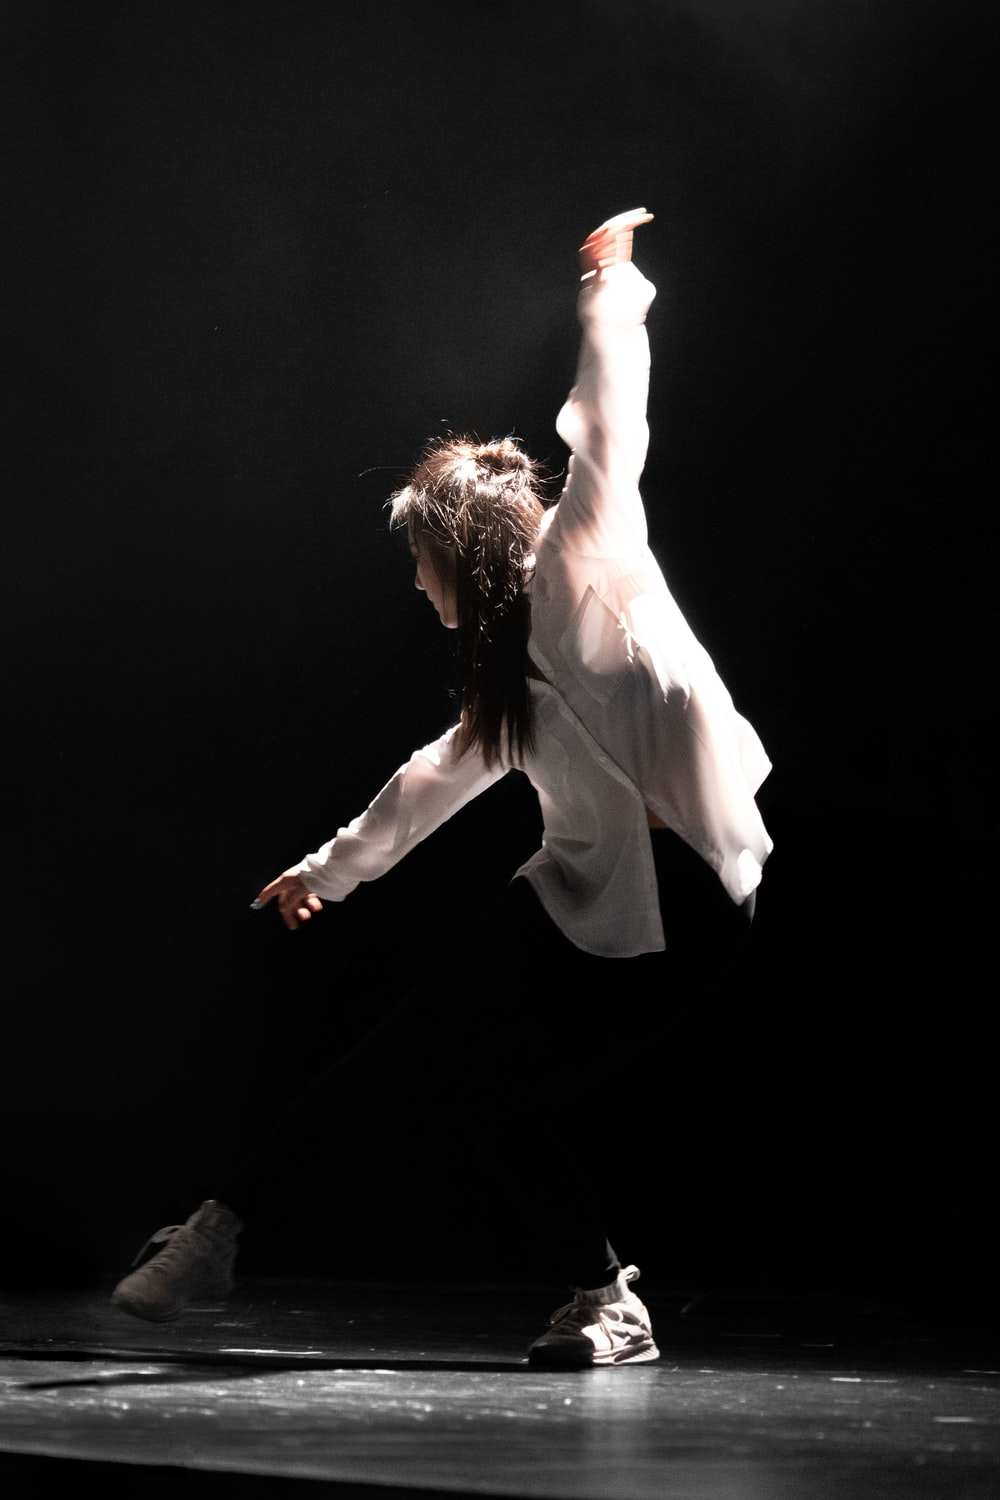 woman in white dress shirt dancing on stage